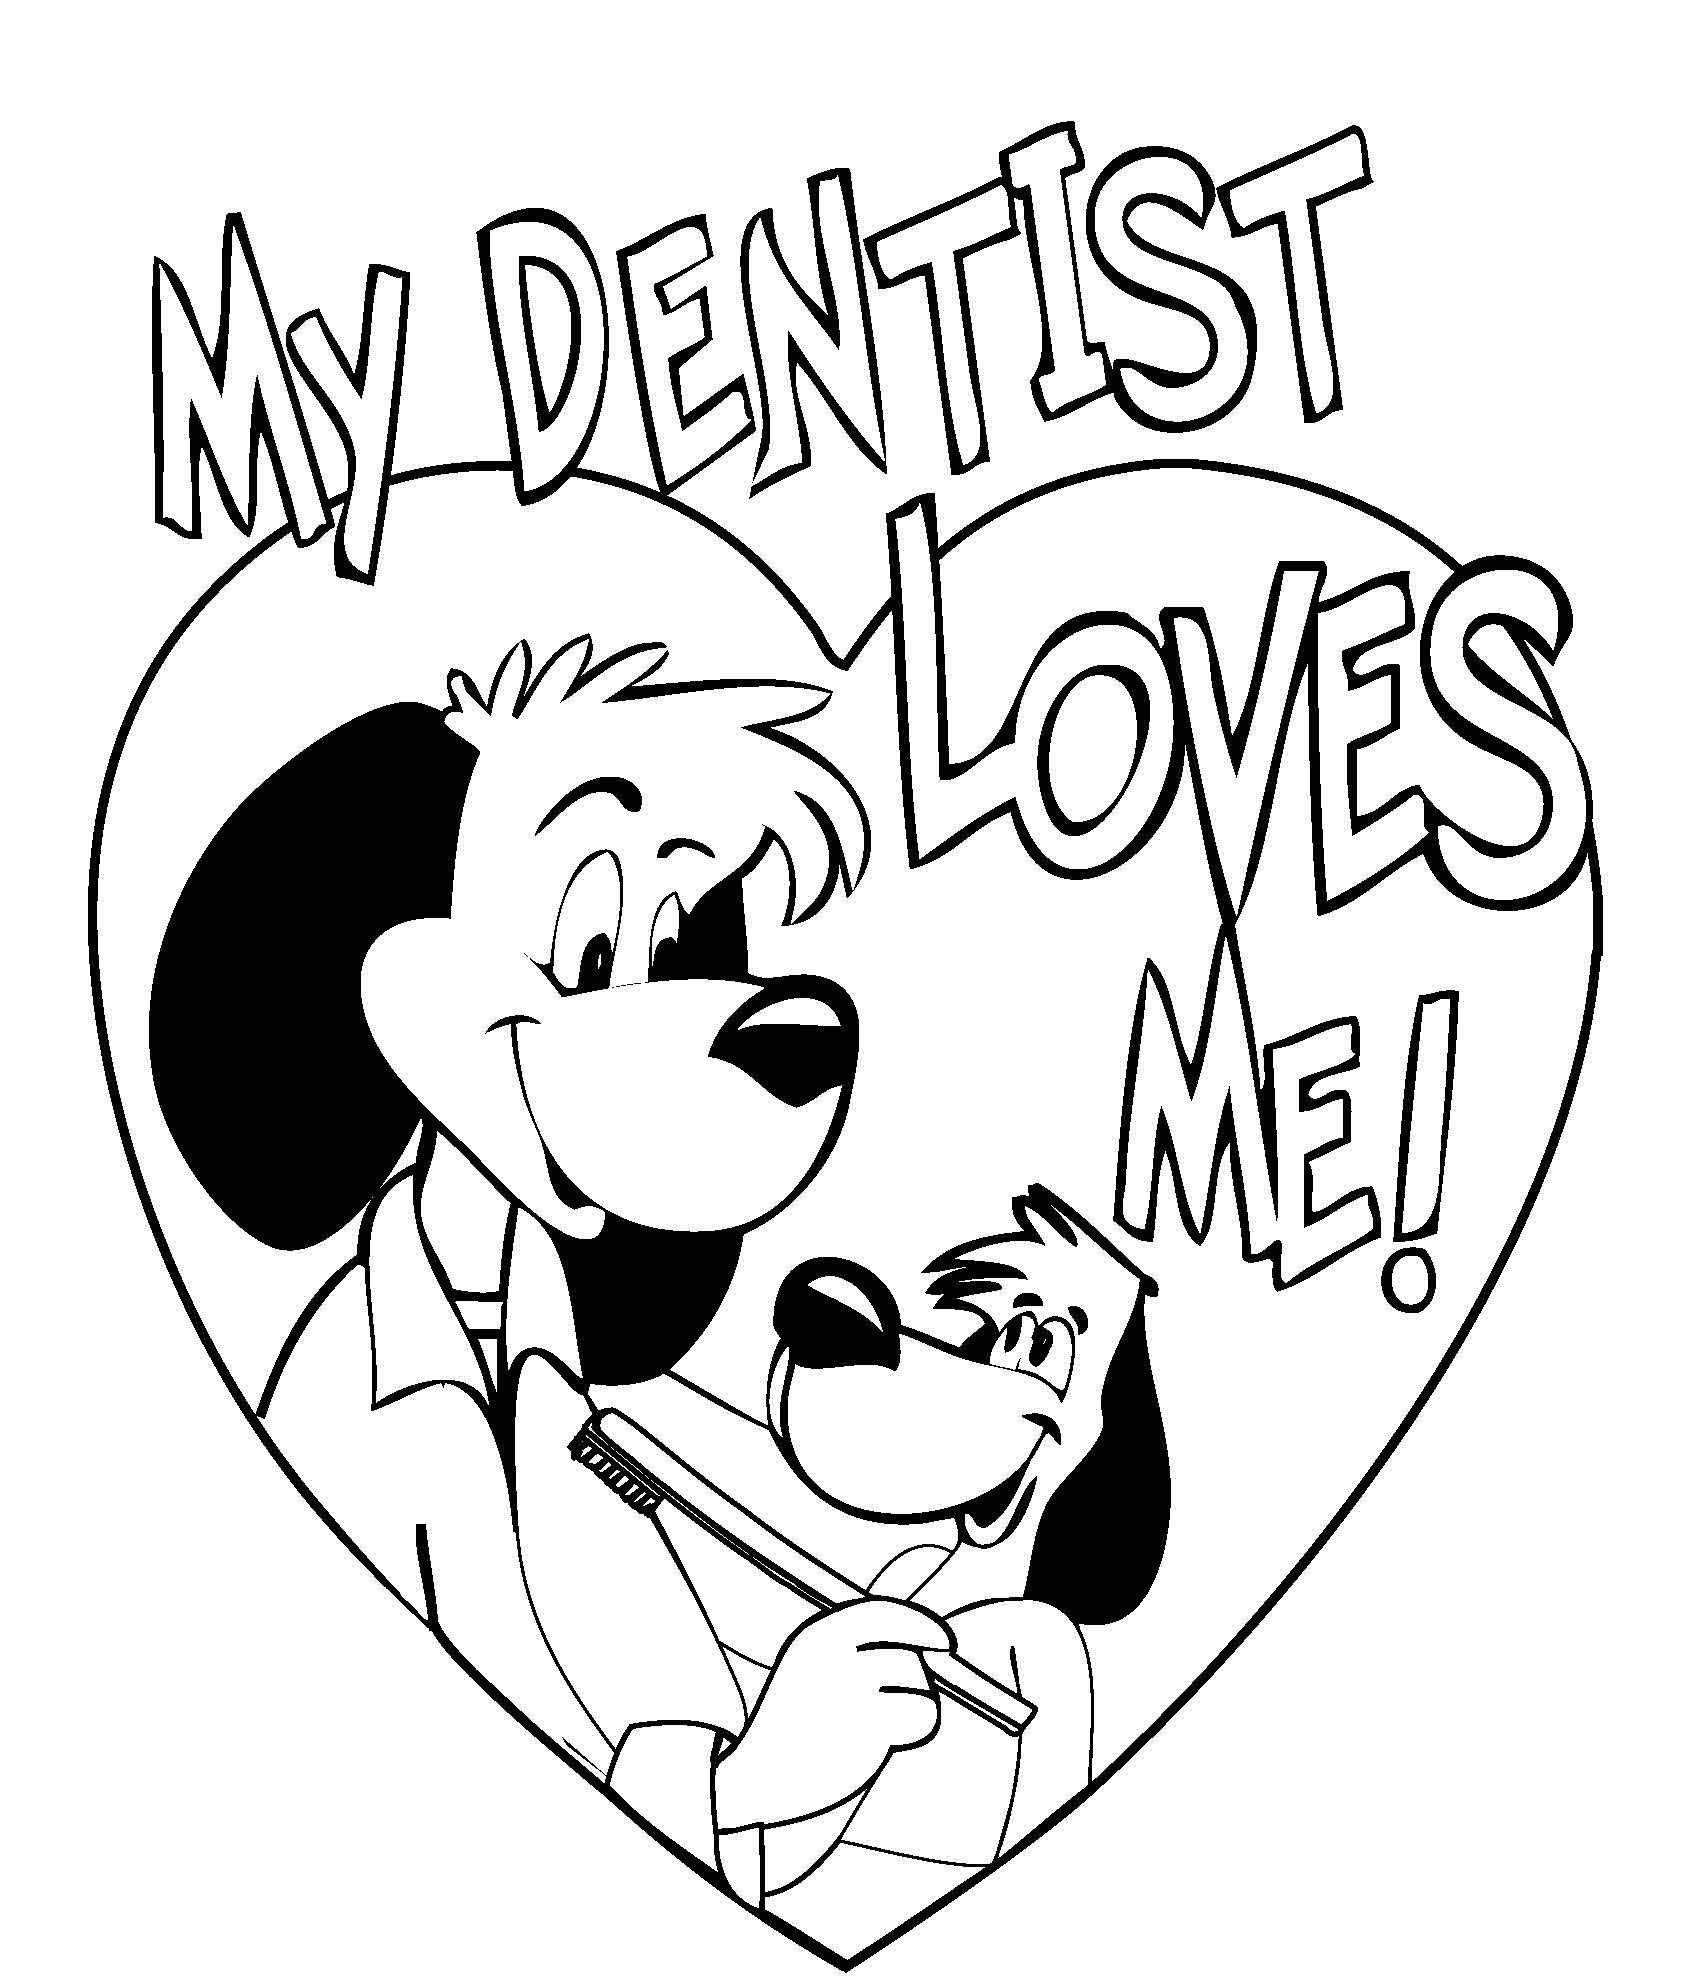 Some really cute Dental Coloring Pages | dds | Pinterest | Dental ...